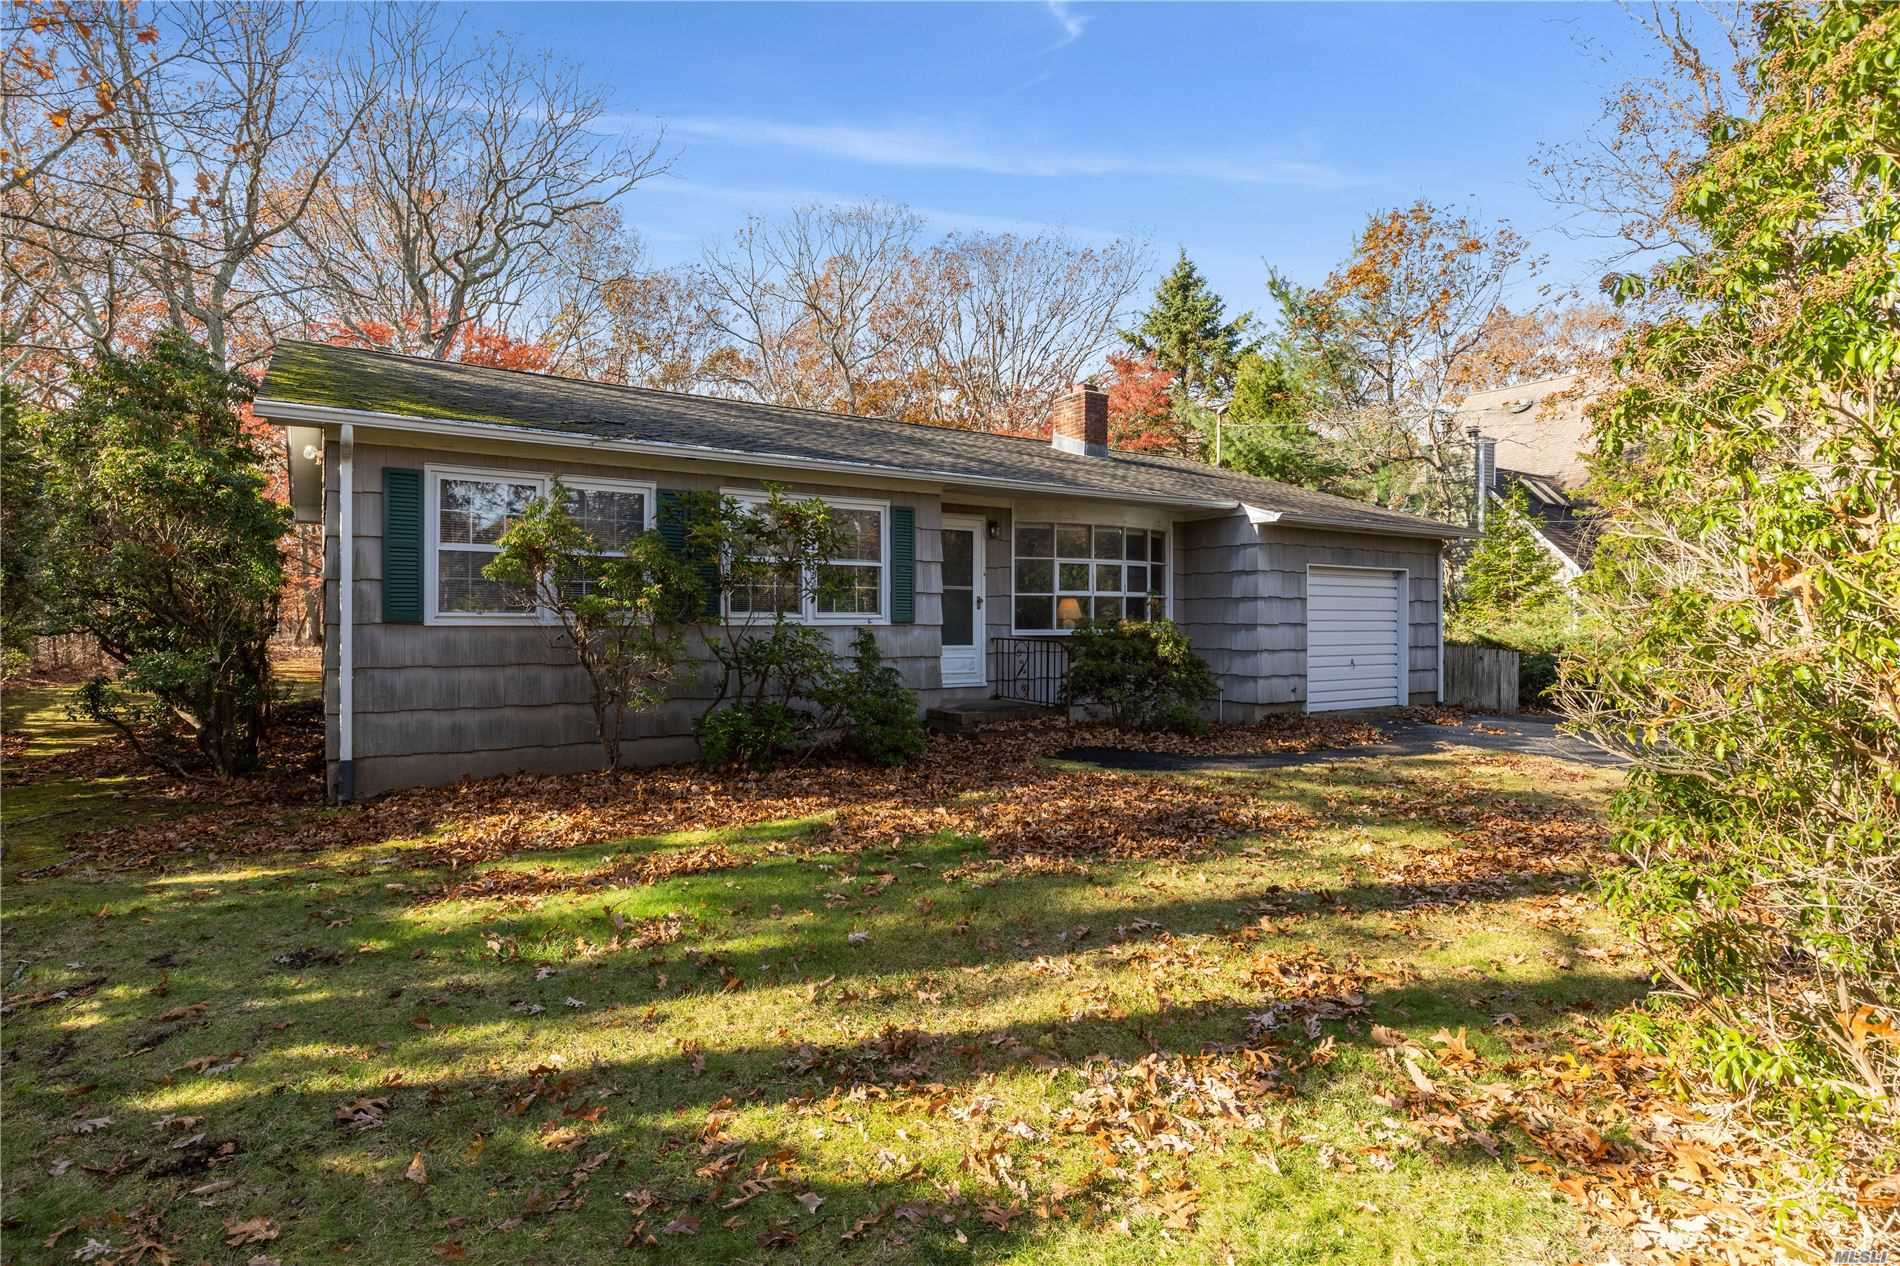 2350 Haywaters Rd Cutchogue, NY 11935